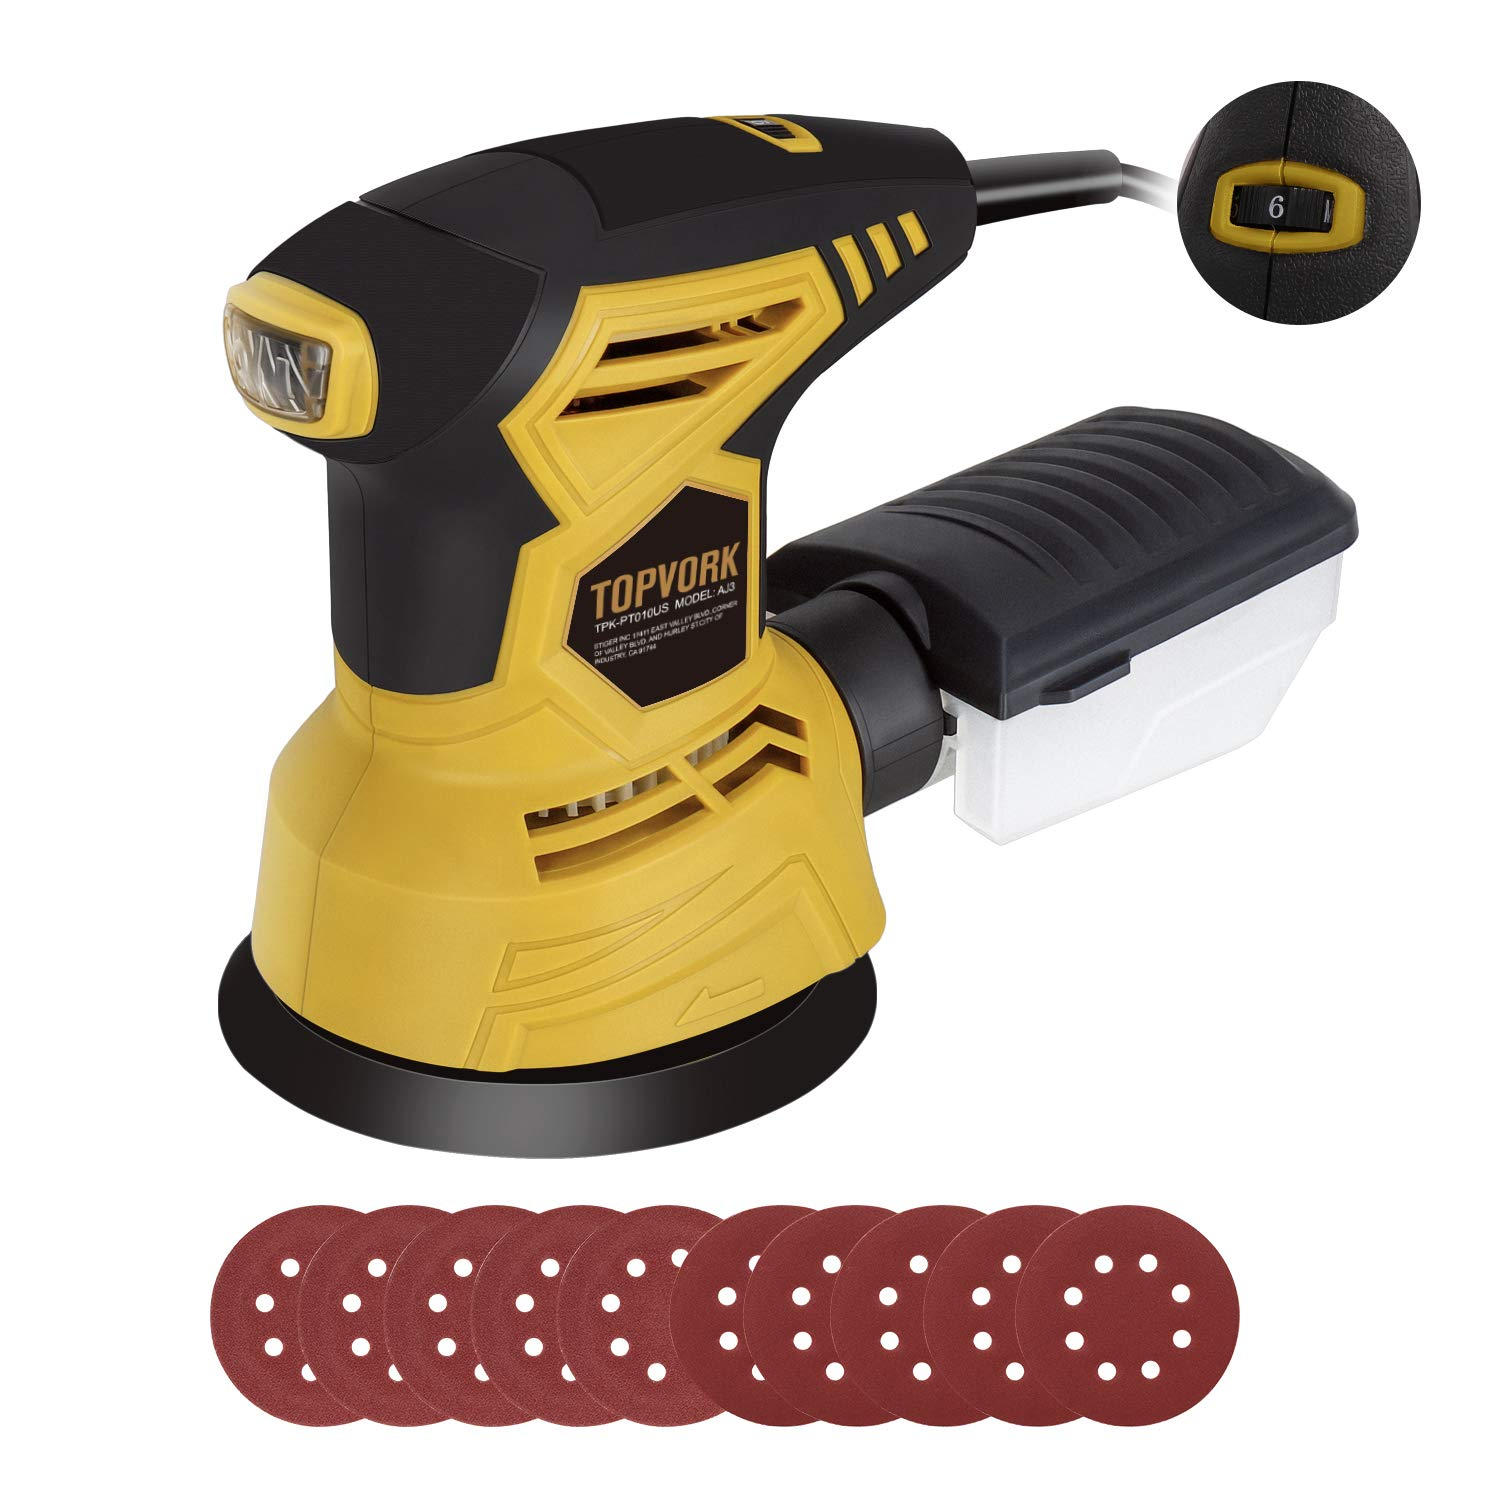 TOPVORK Random Orbit Sander, 2.5A 5-inch sander with 10Pcs Sandpapers, 12000 OPM, 6 Variable Speed, Dust Collector, Ideal for Sanding, Finishing, Polishing Wood